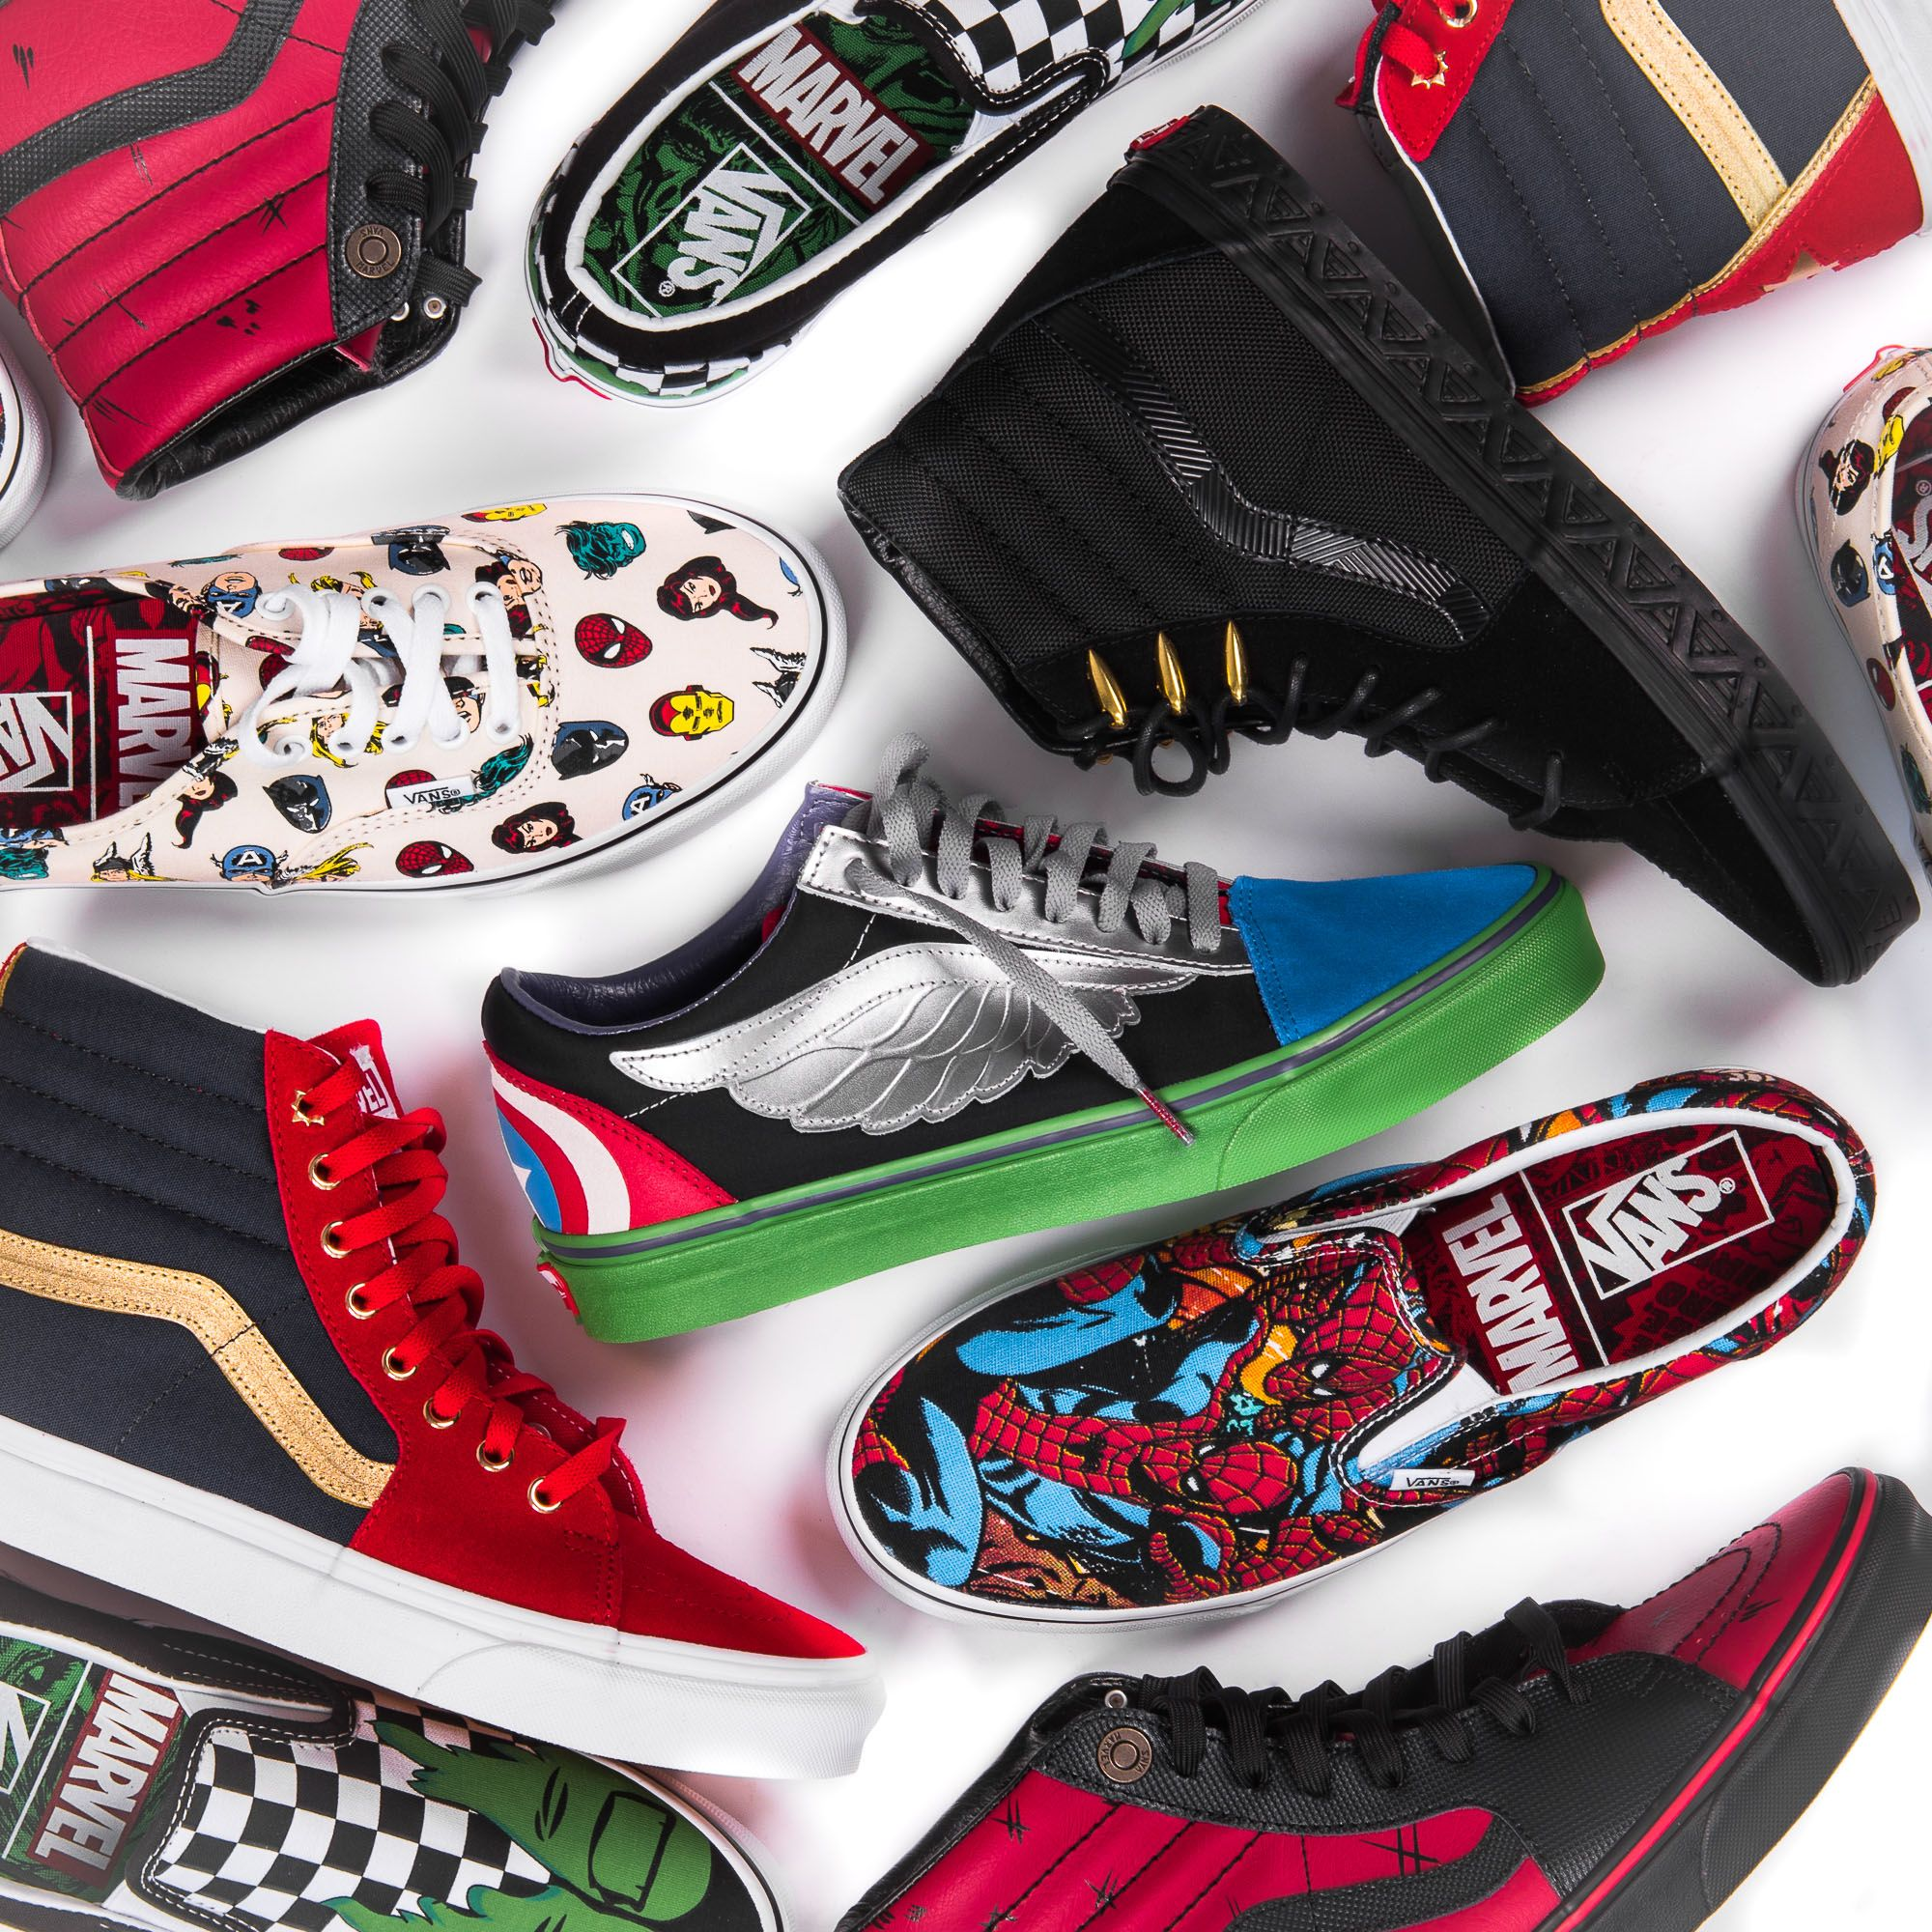 3a7bc48bc3 The Vans x Marvel collection is here! The two brands connect for an insane  collection